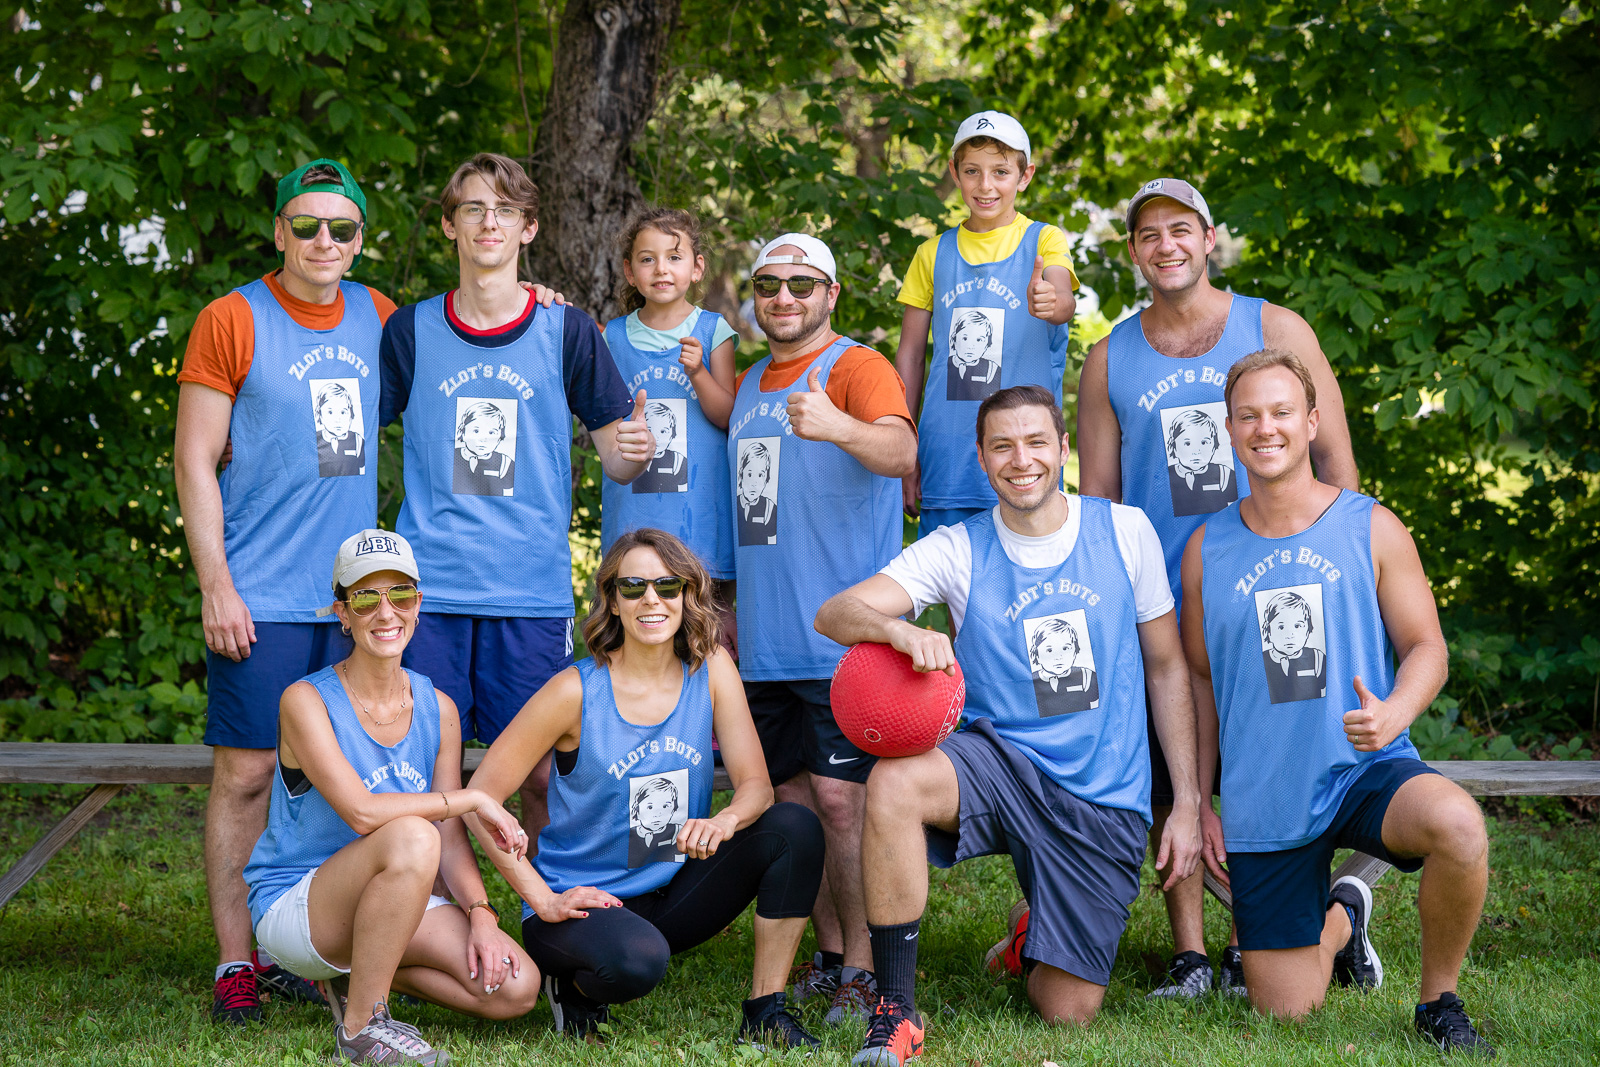 Grooms kickball team